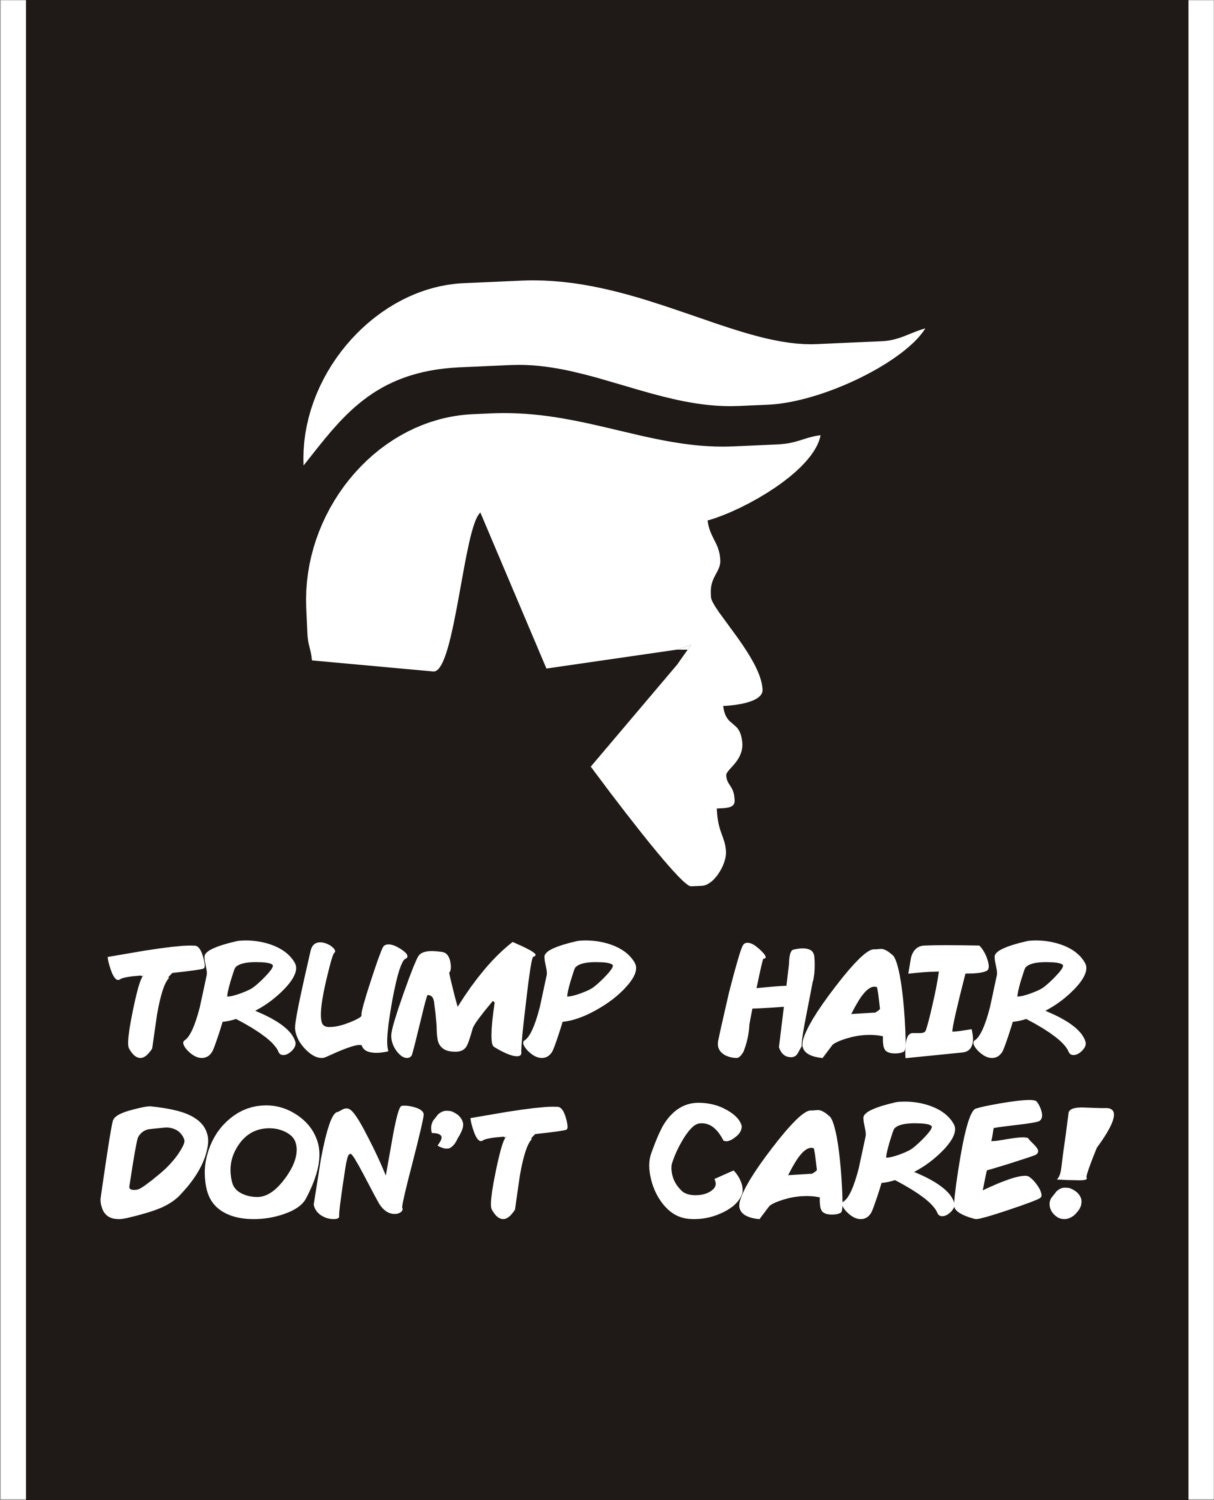 Trump hair decal trump decal trump sticker funny trump decal funny trump hair decal trump hair dont care sticker trump dont care decal